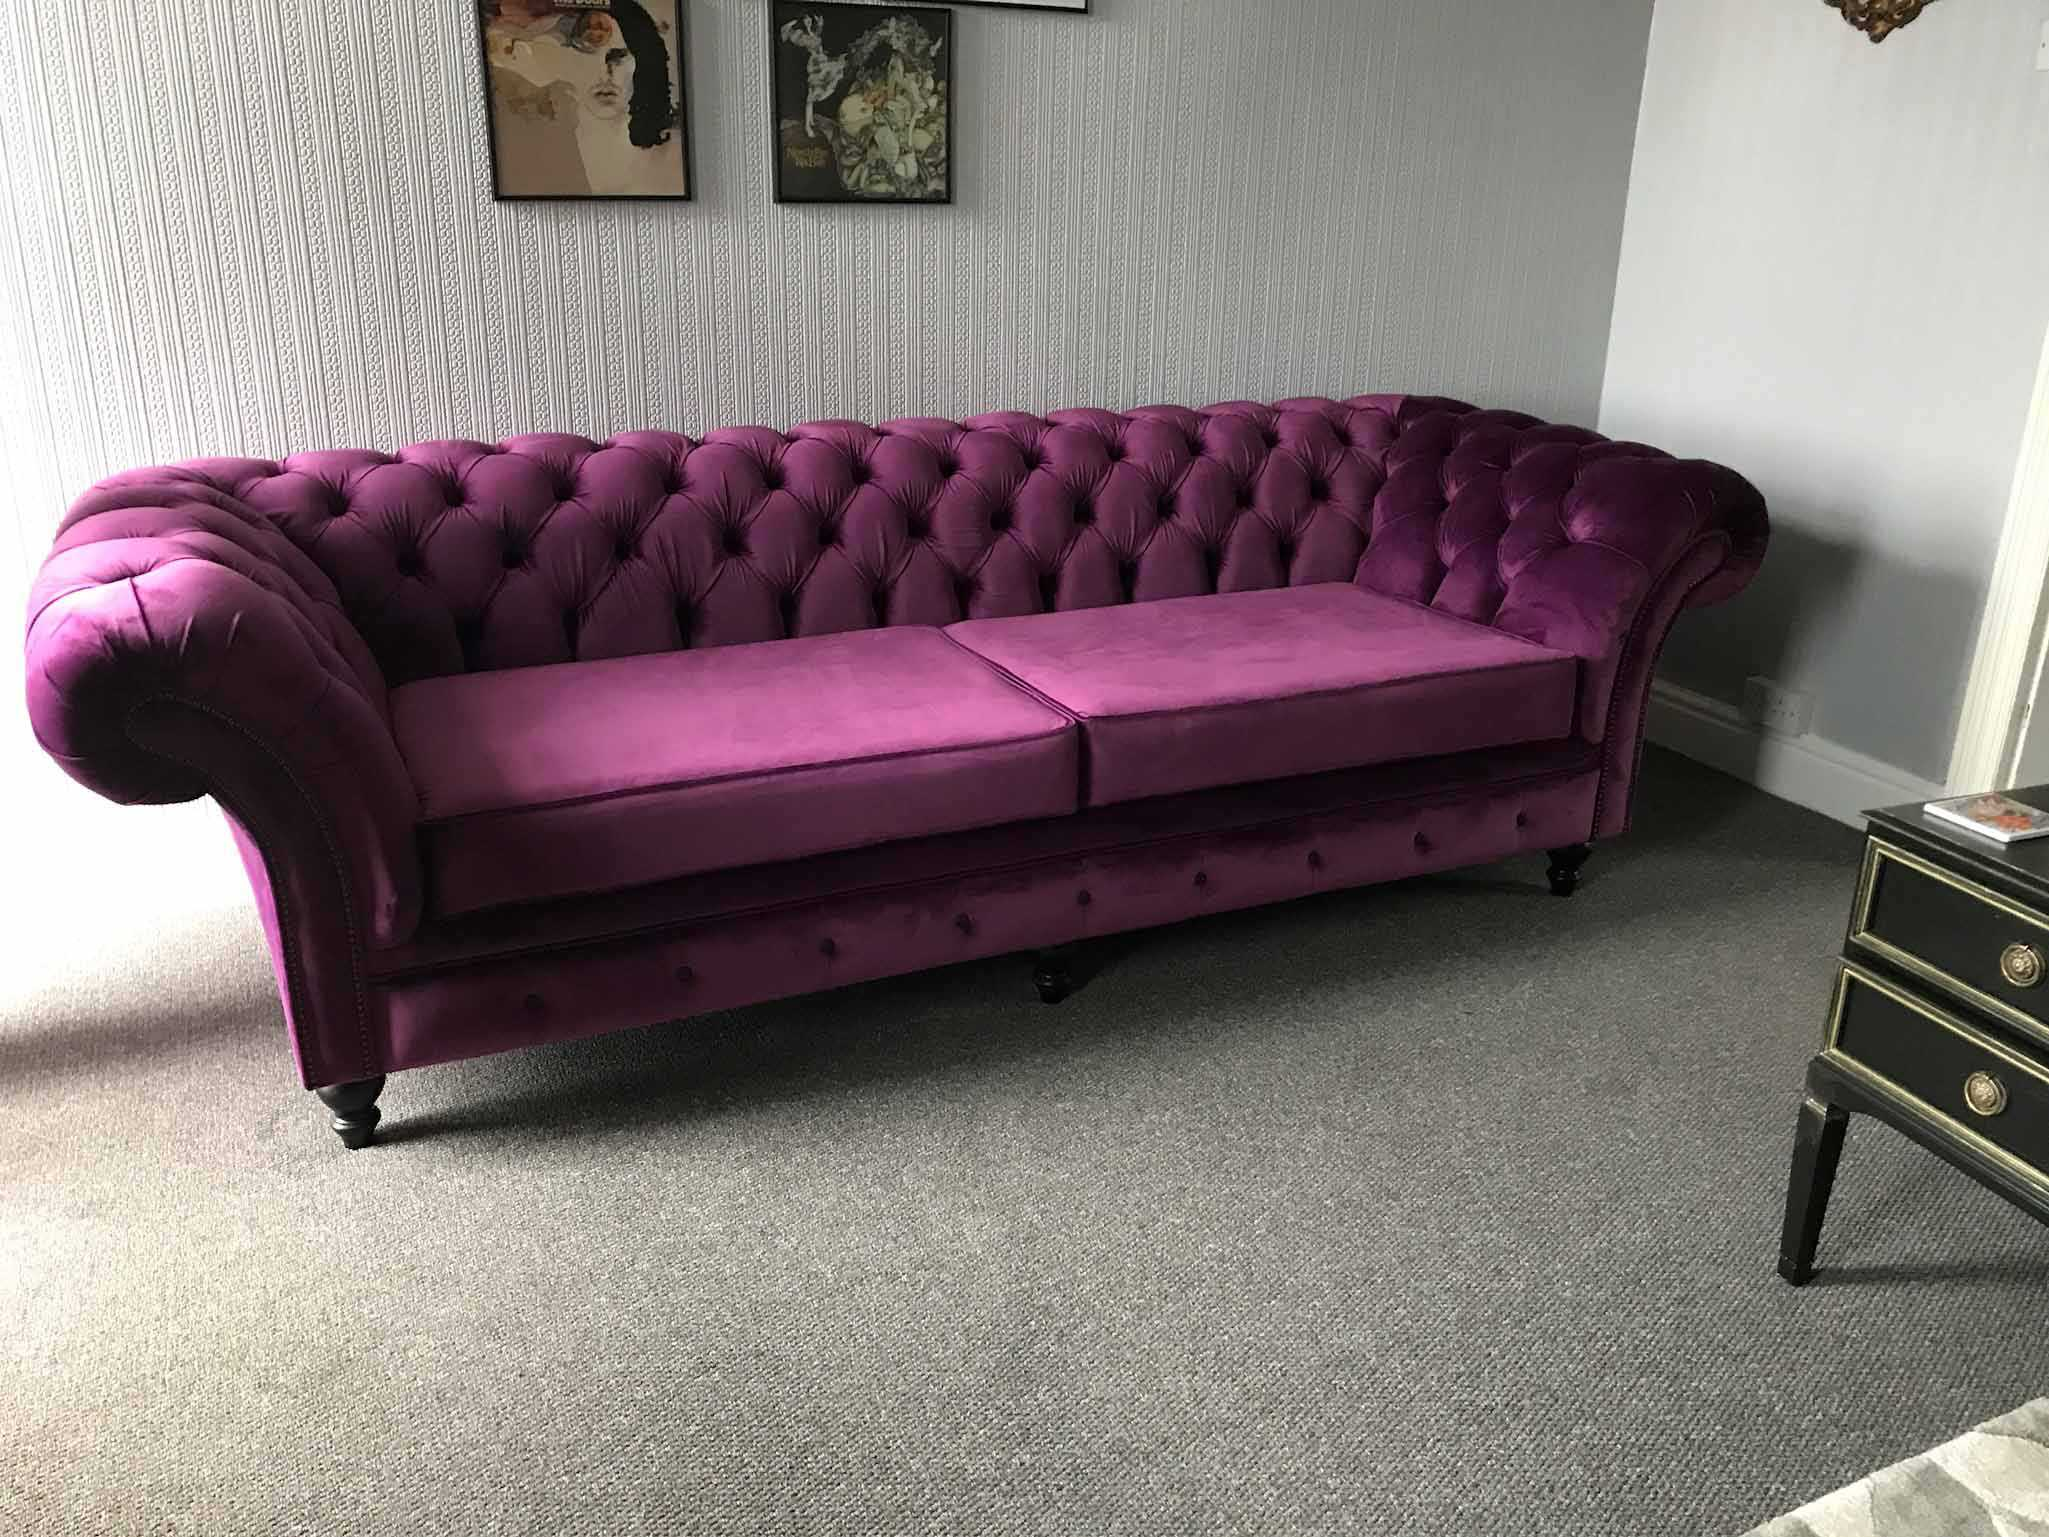 Amethyst london chesterfield sofa